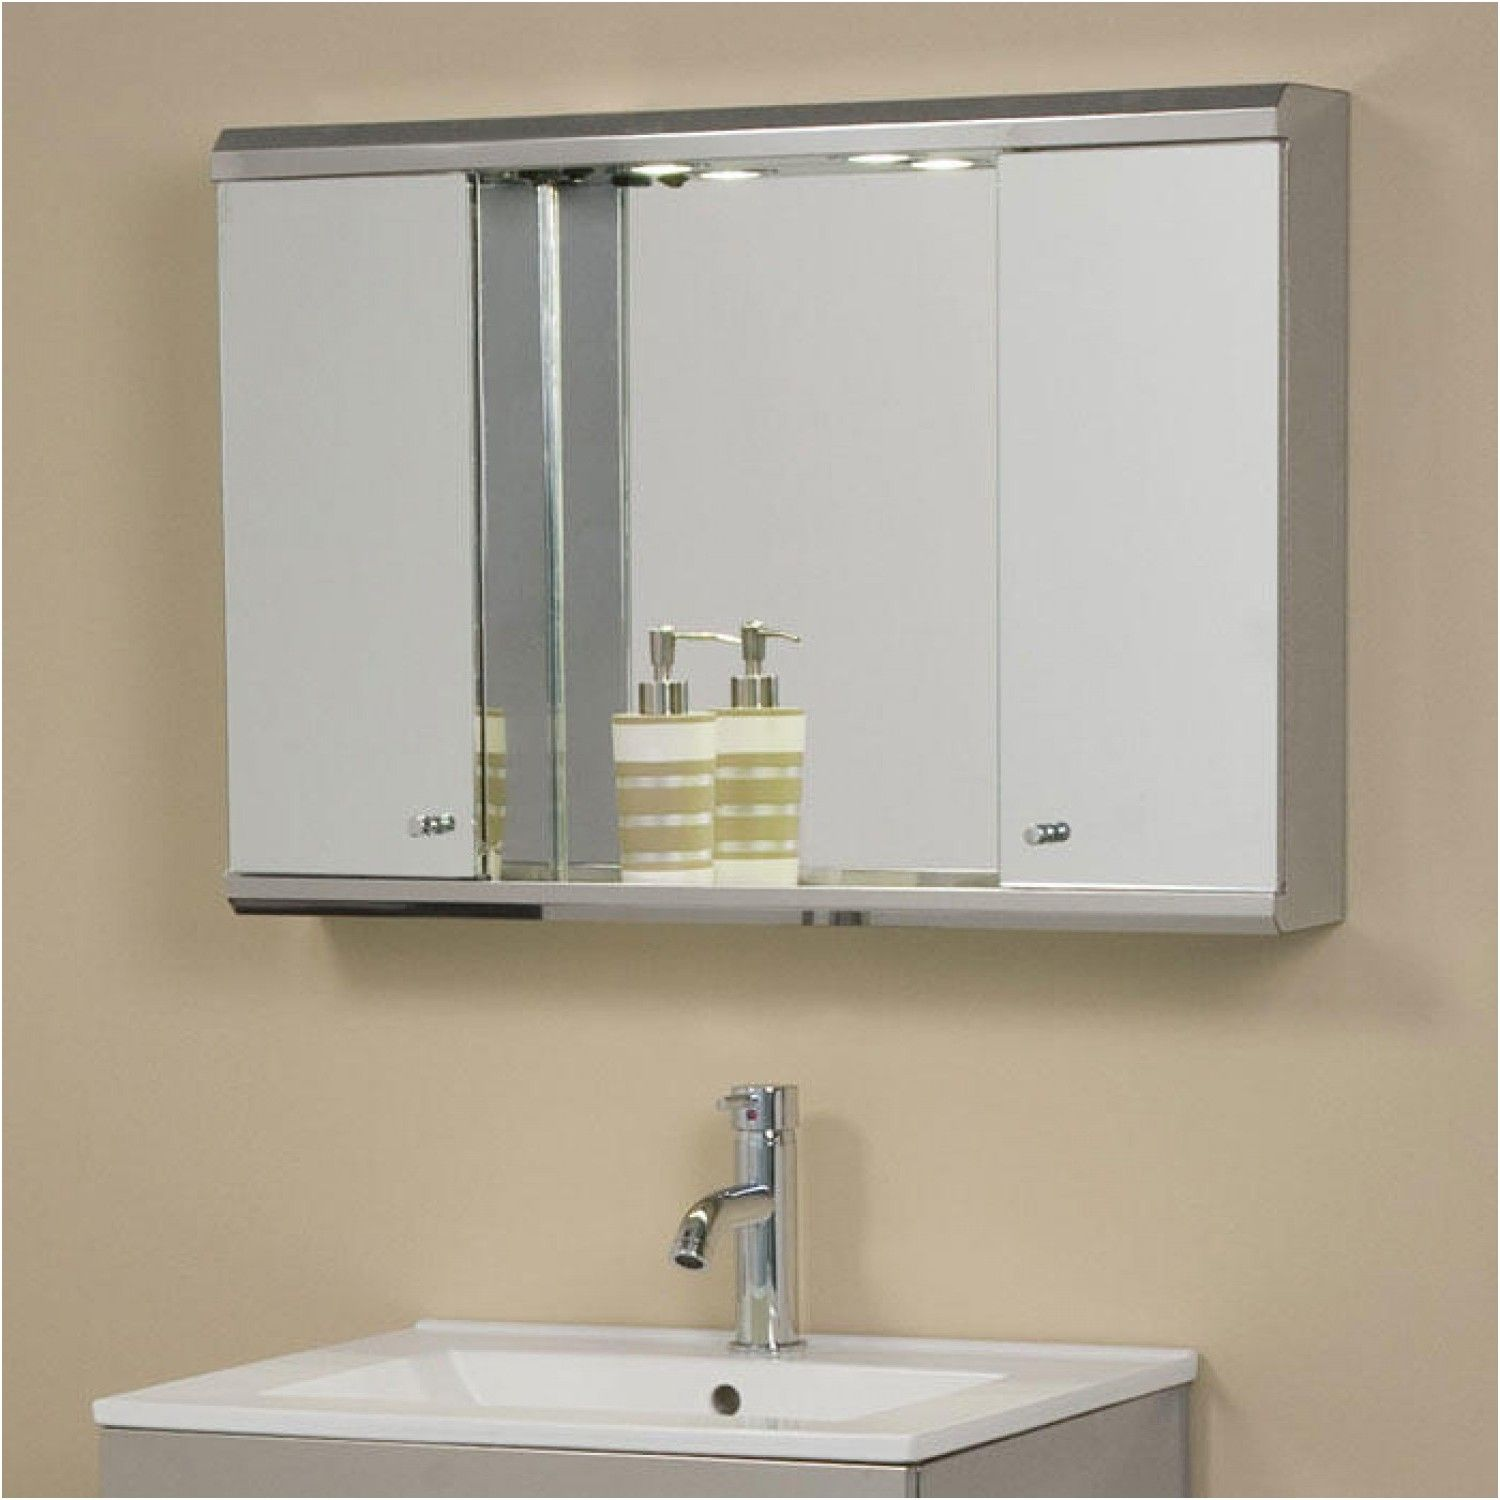 illumine dual stainless steel medicine cabinet with lighted mirror ...